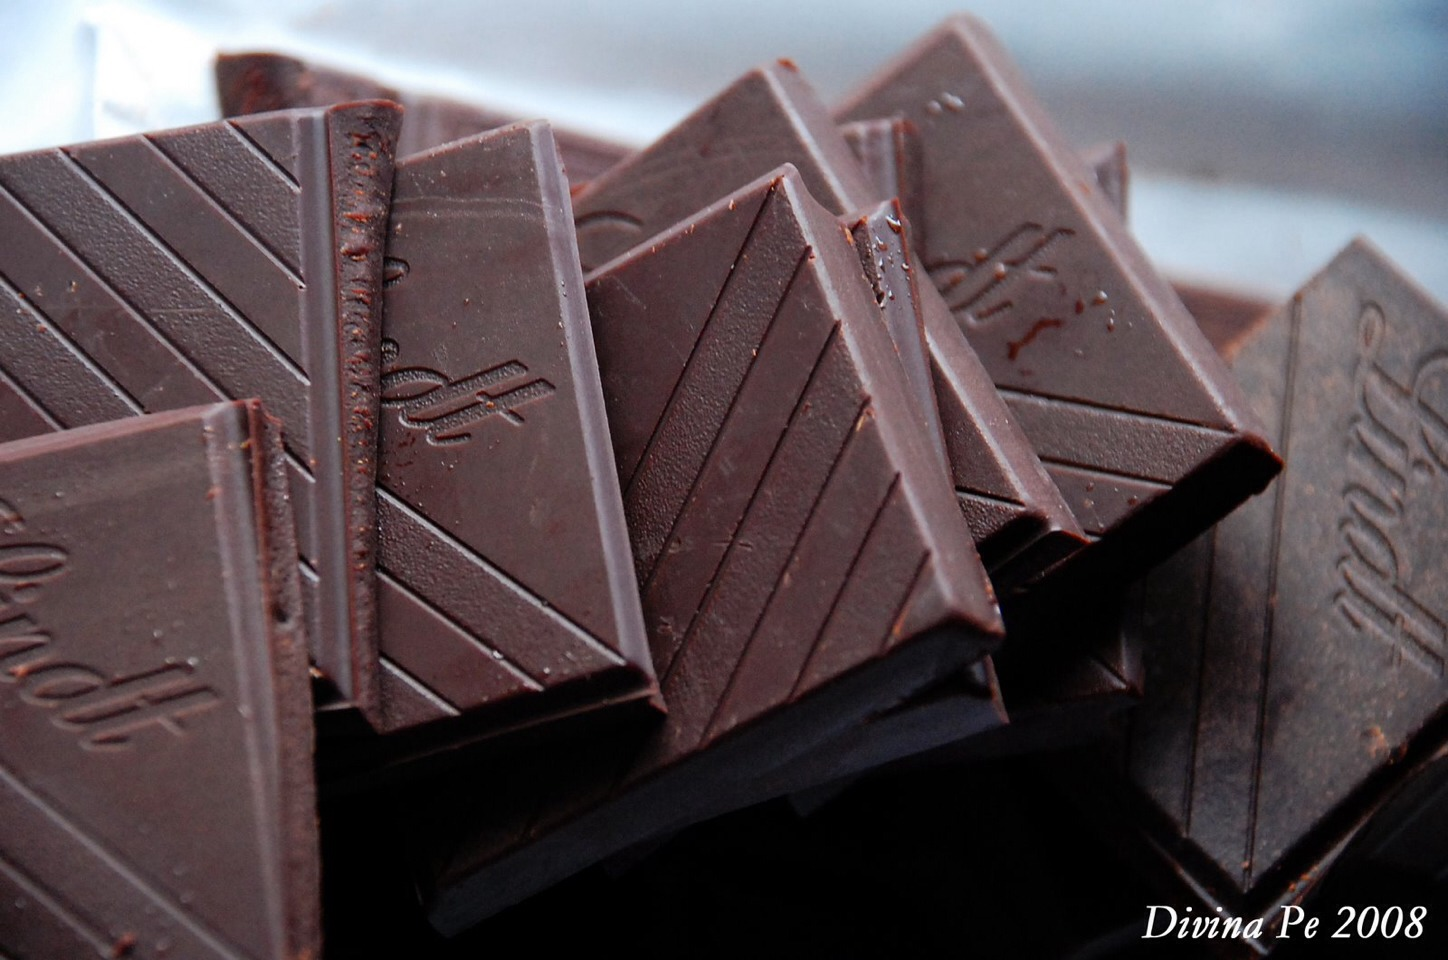 Dark Chocolate If you're craving chocolate, make sure it's over 70 per cent cocoa. This bittersweet treat will help you relax your muscles.